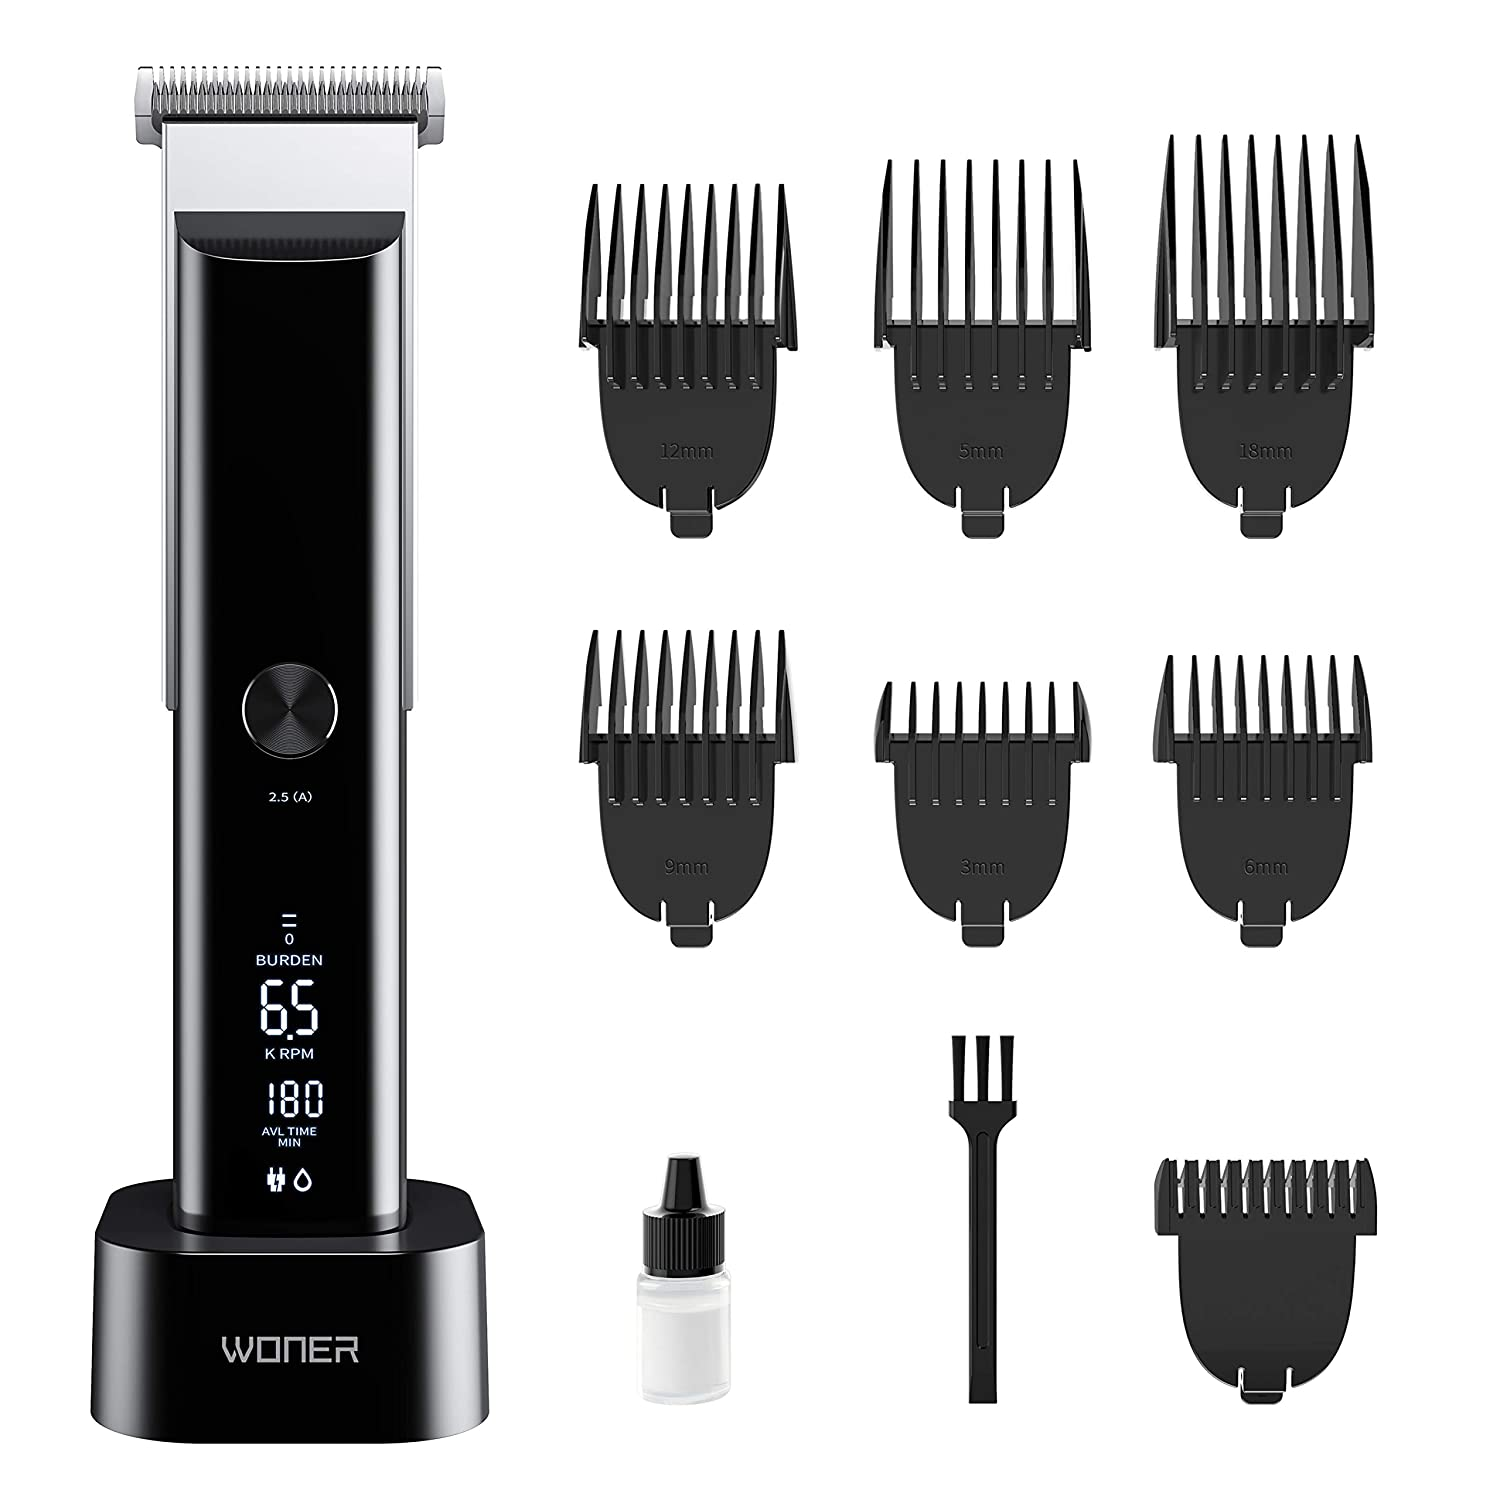 WONER Hair Clippers for Men, Clippers for Hair Cutting, Rechargeable Cordless Hair Trimmers with Charging Stand, Hair Cutting Kits for Family, Christmas Gift for Men Dad Boyfriend Husband